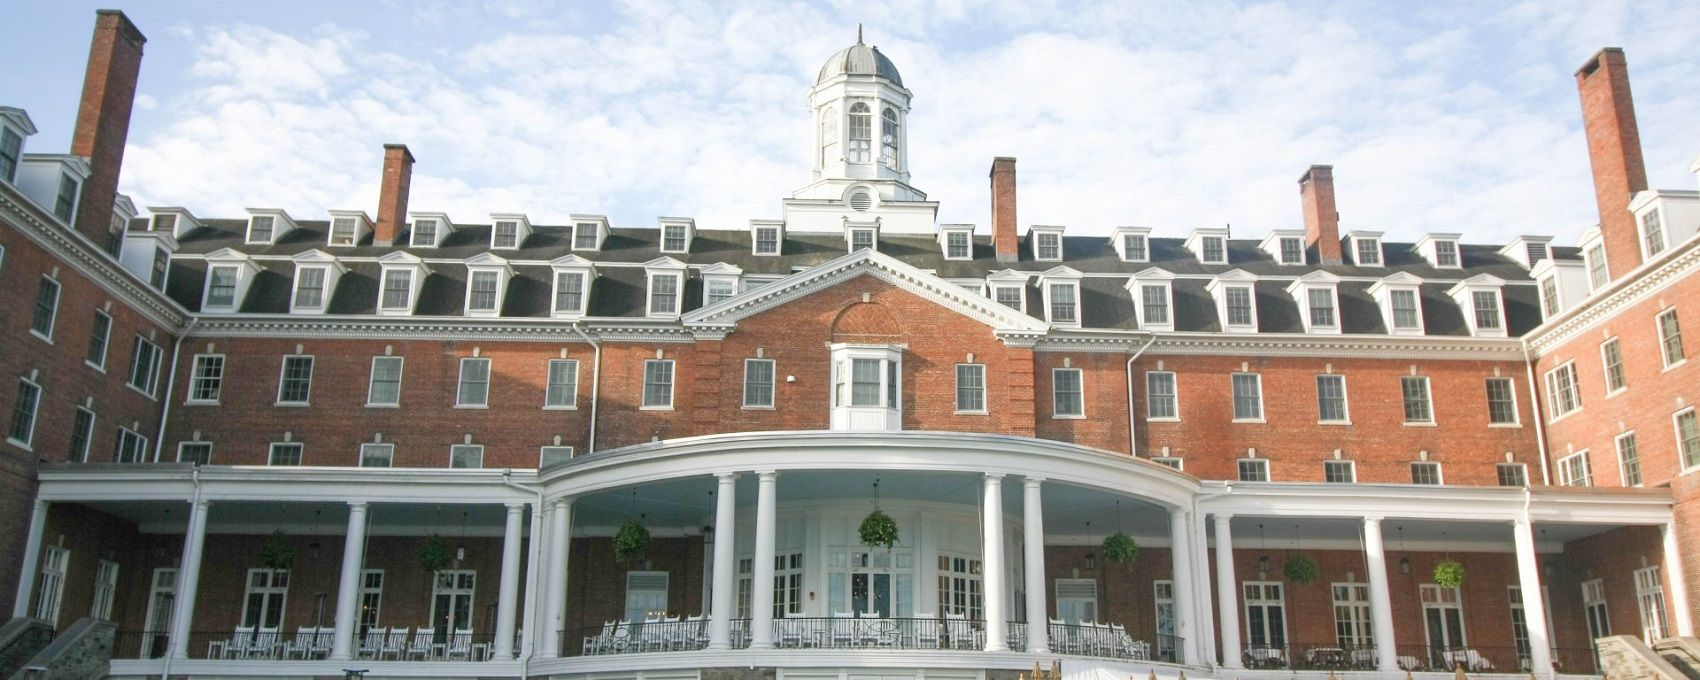 ny-otesaga-resort-hotels-haunted-journeys